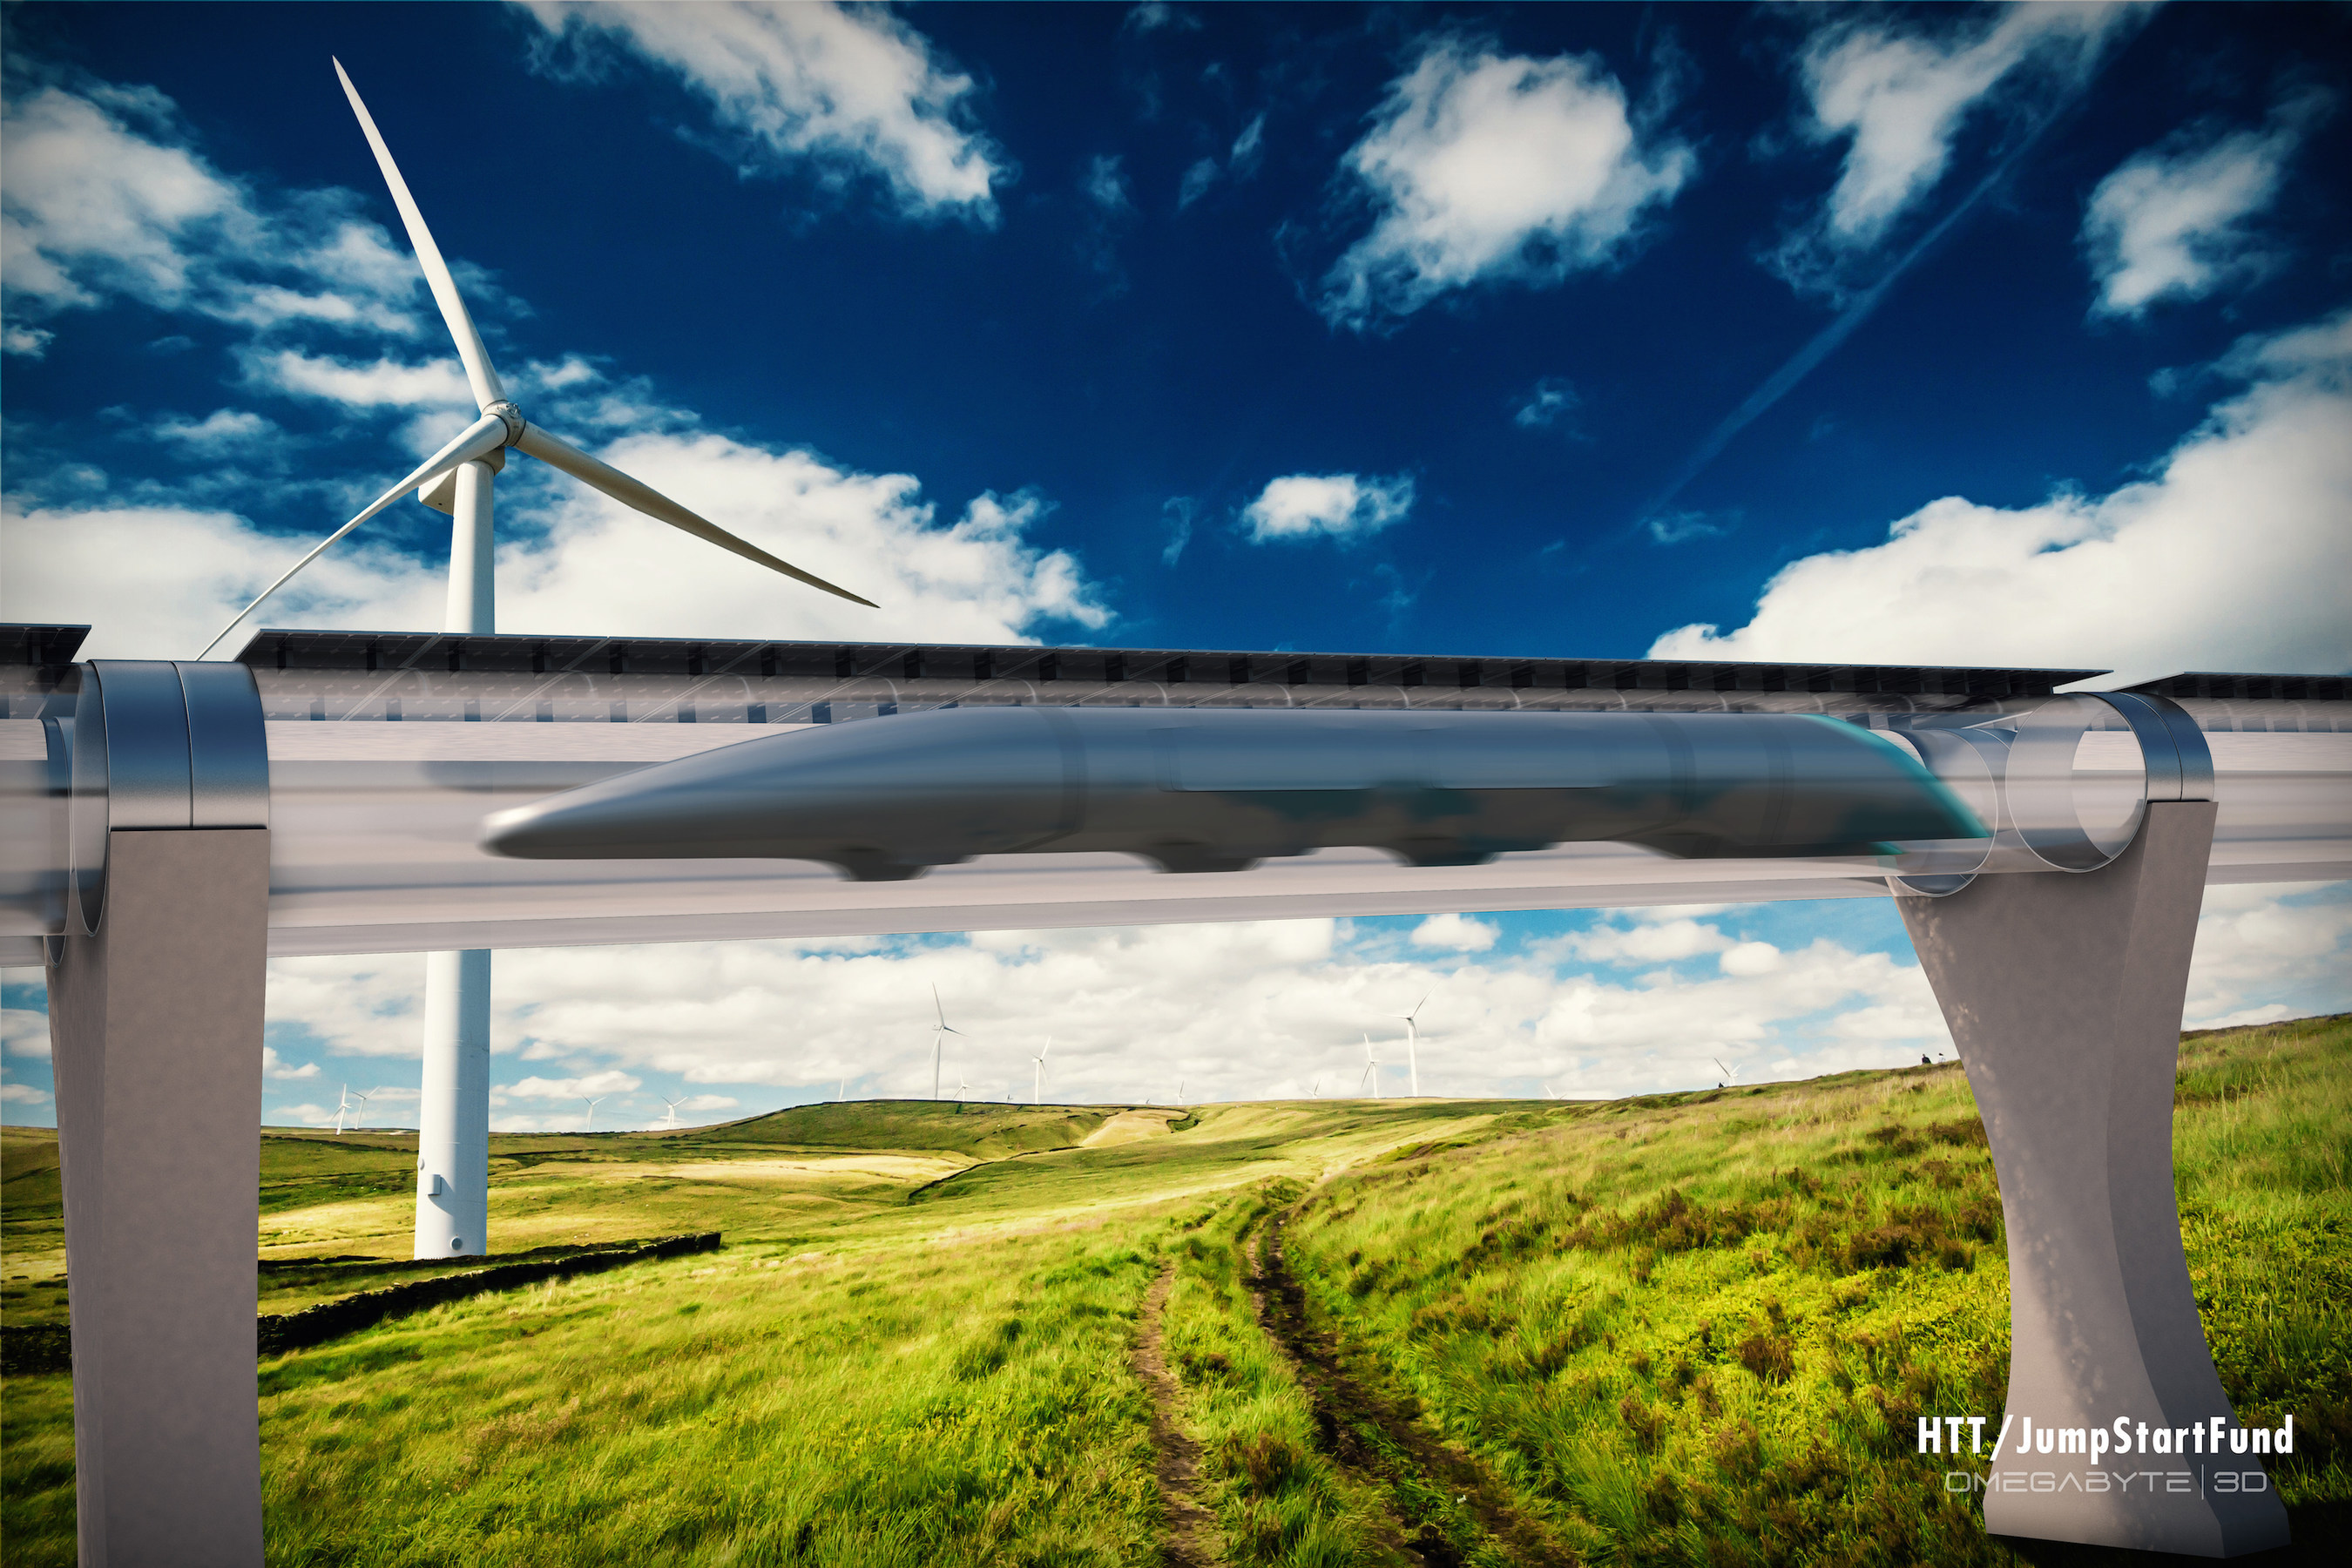 Hyperloop Transportation Technologies Inc